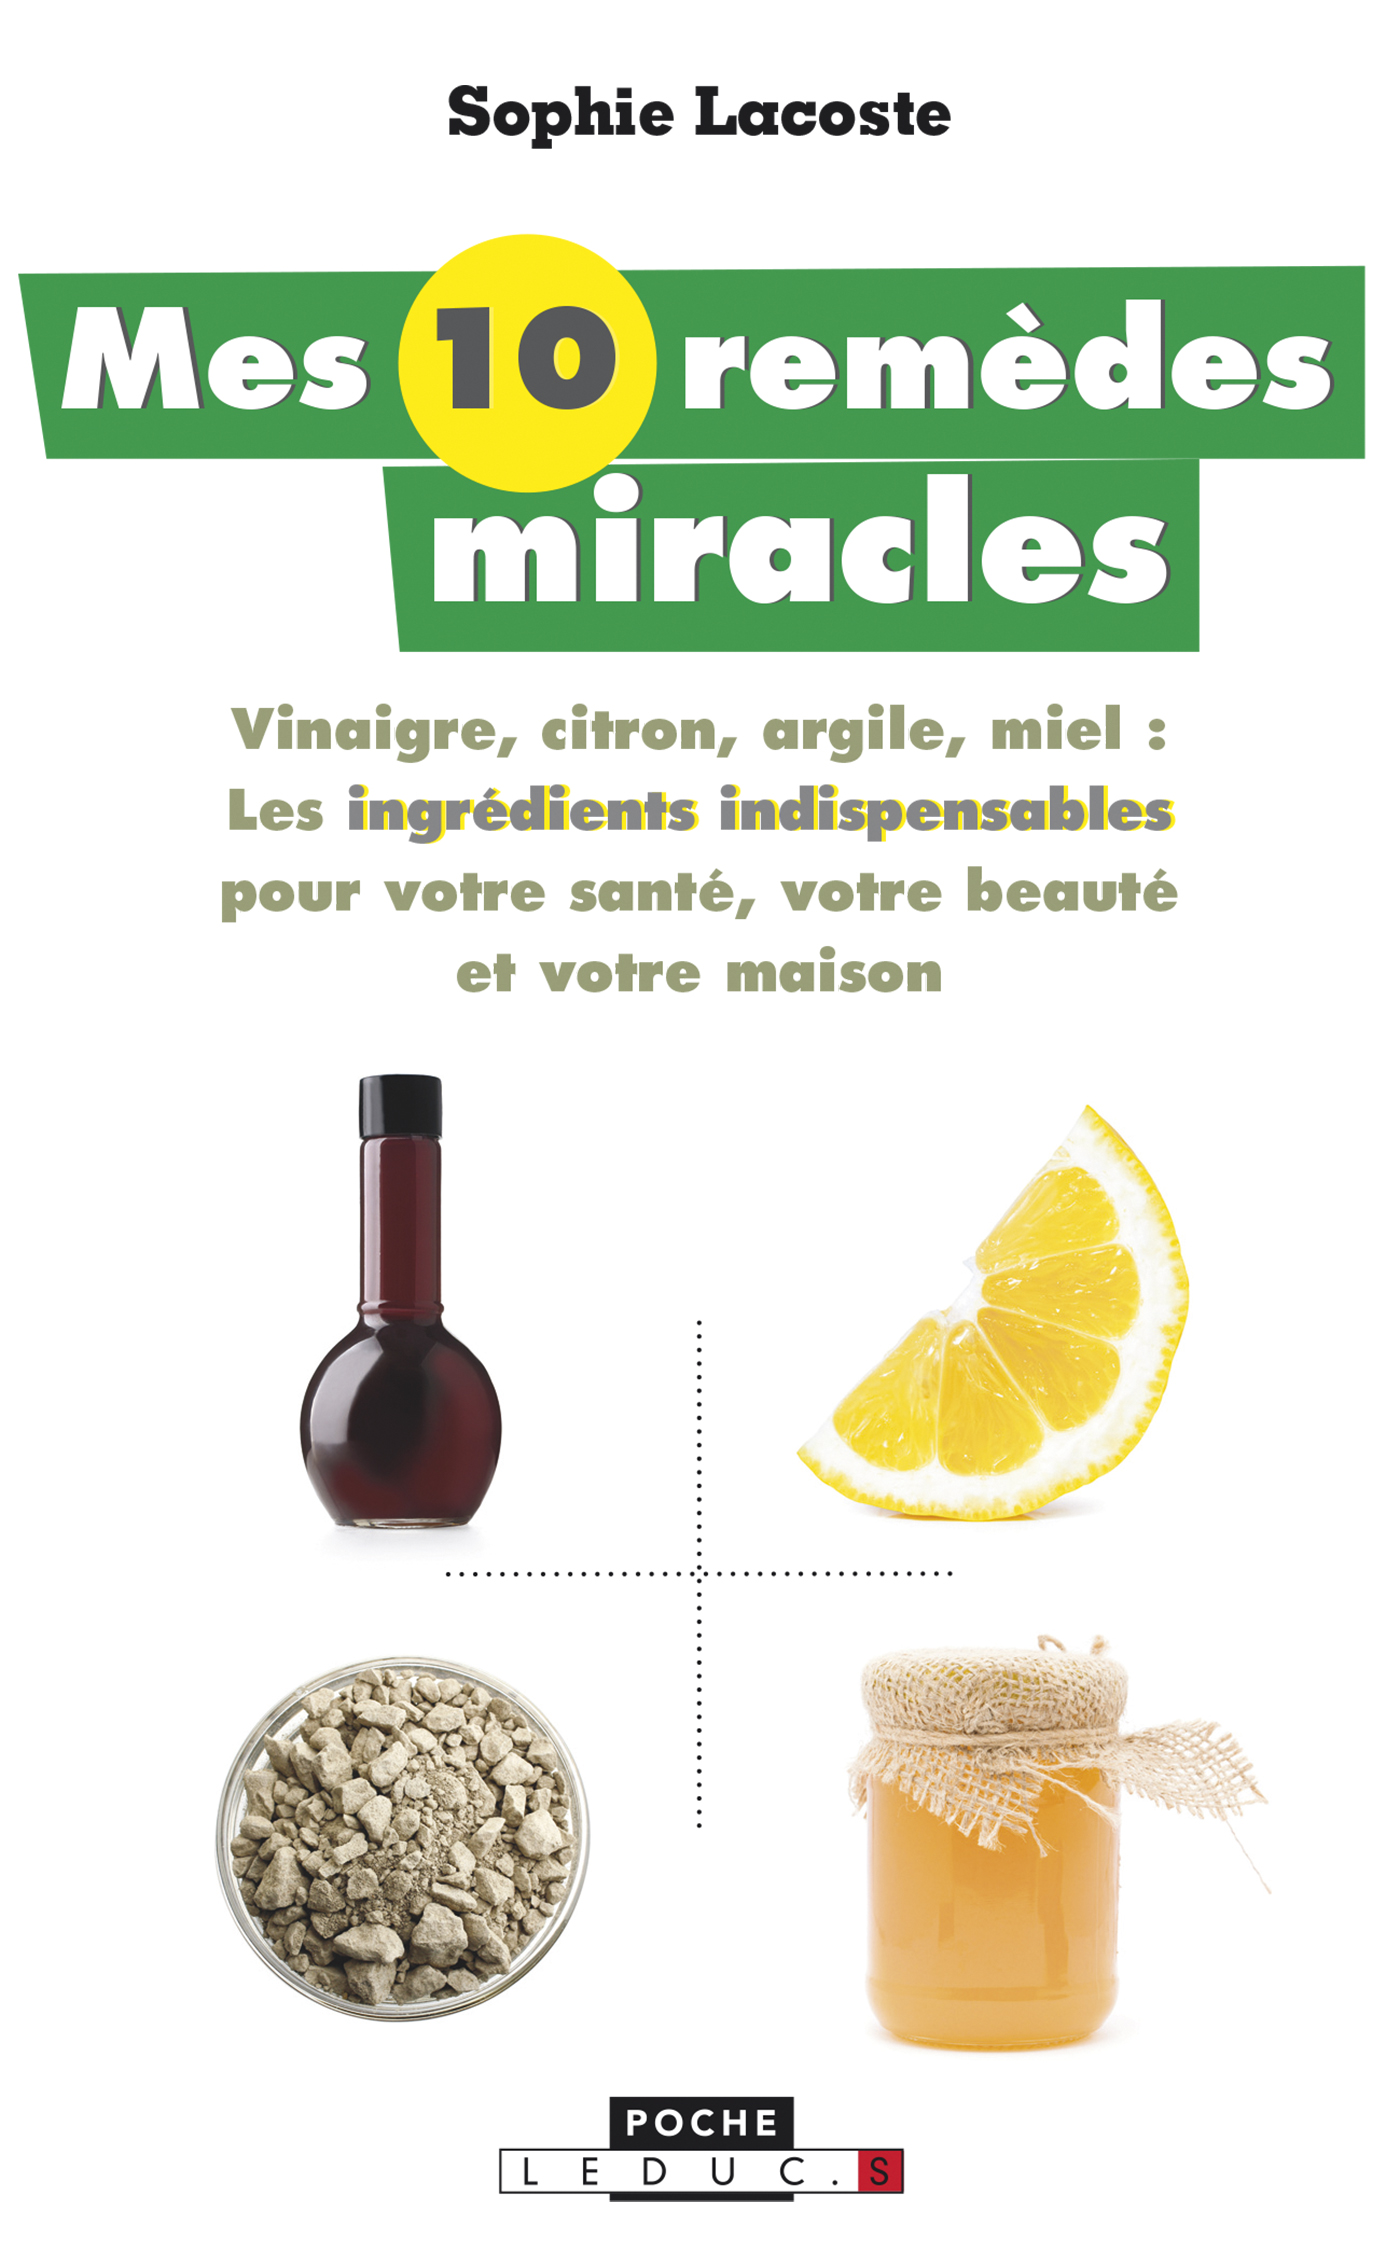 Mes 10 remèdes miracles